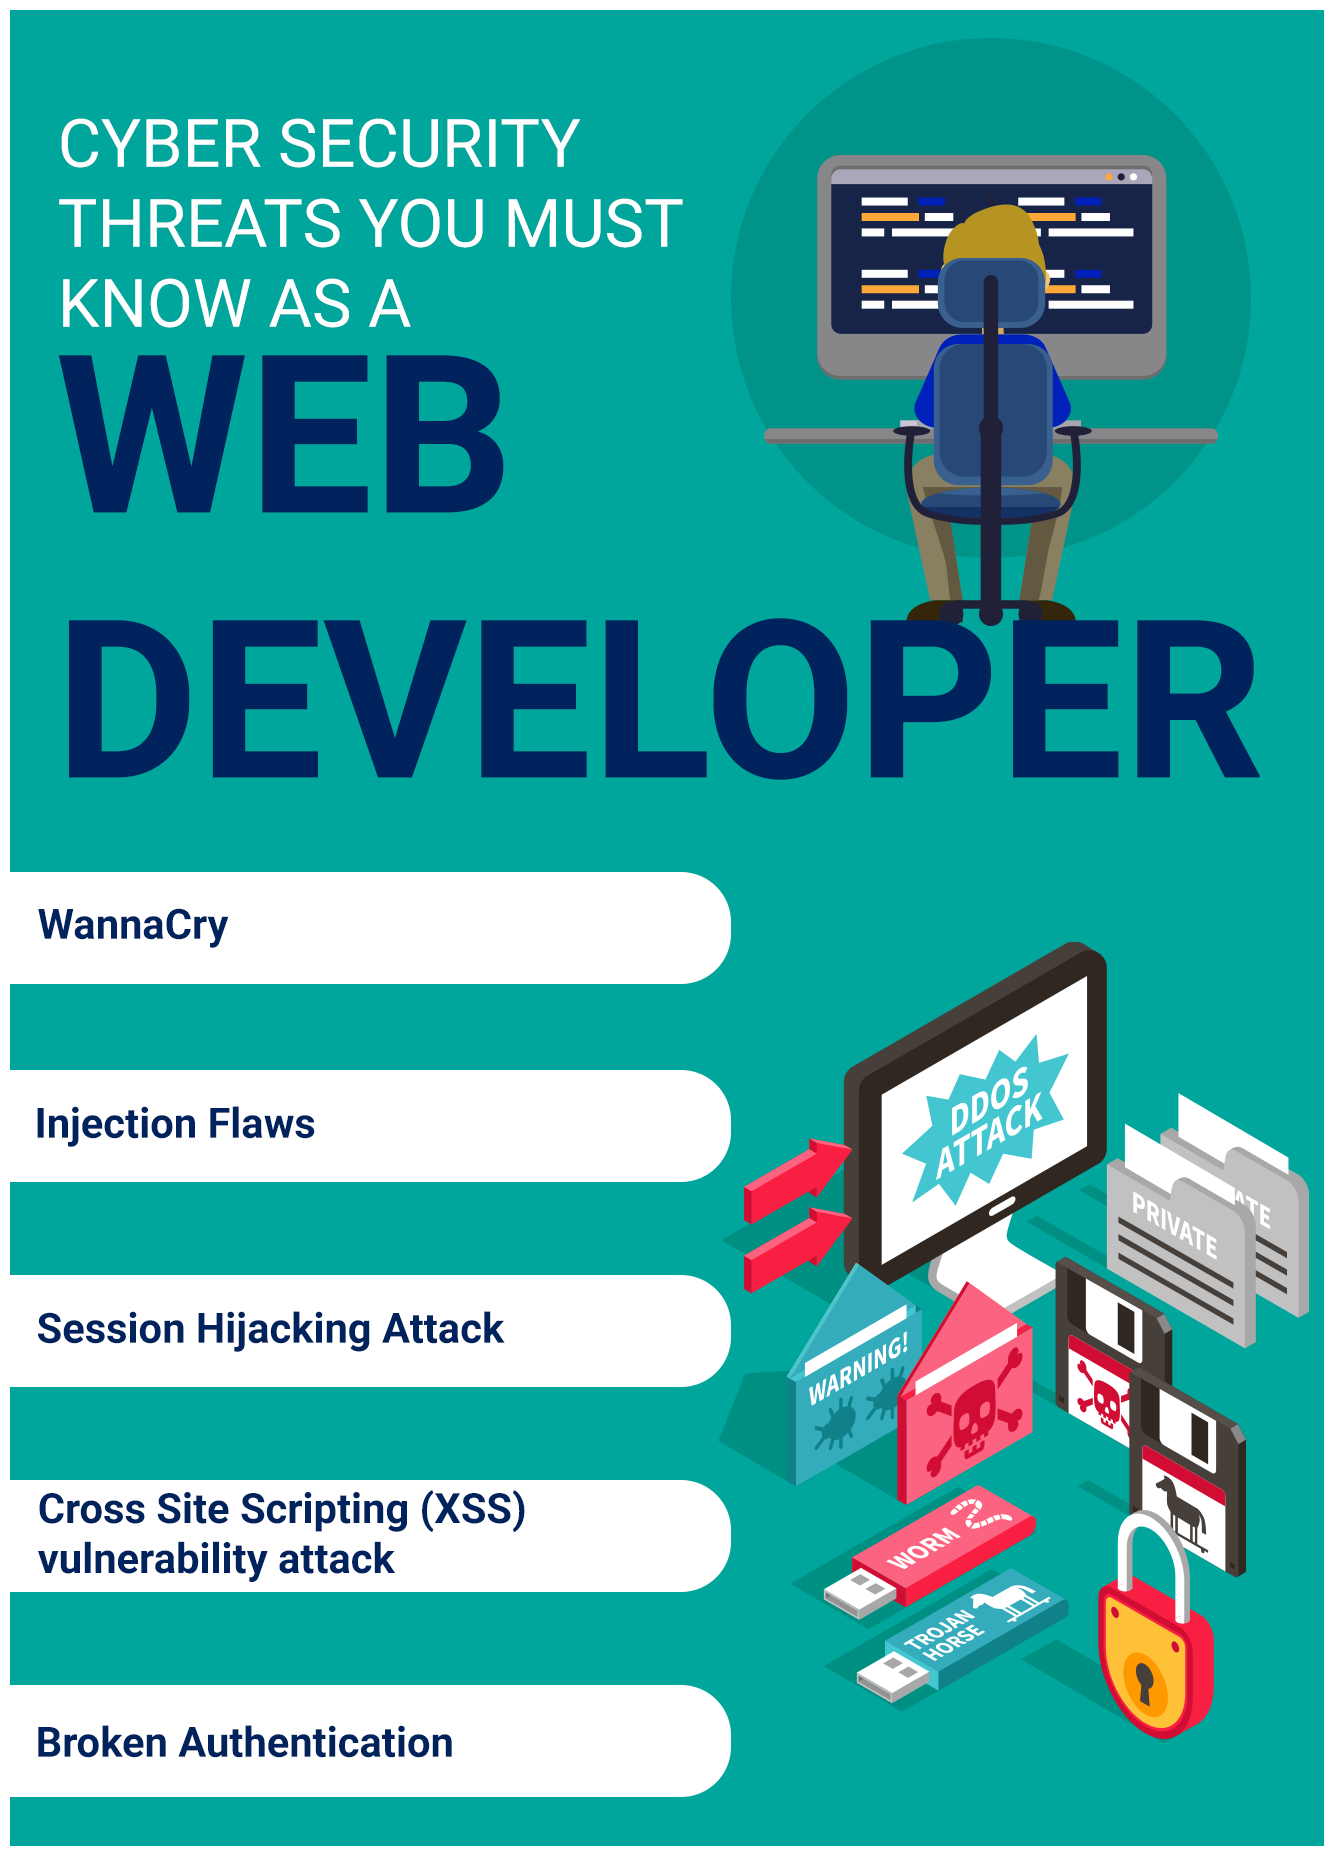 Cyber Security Threats You Must Know as a Web Developer in